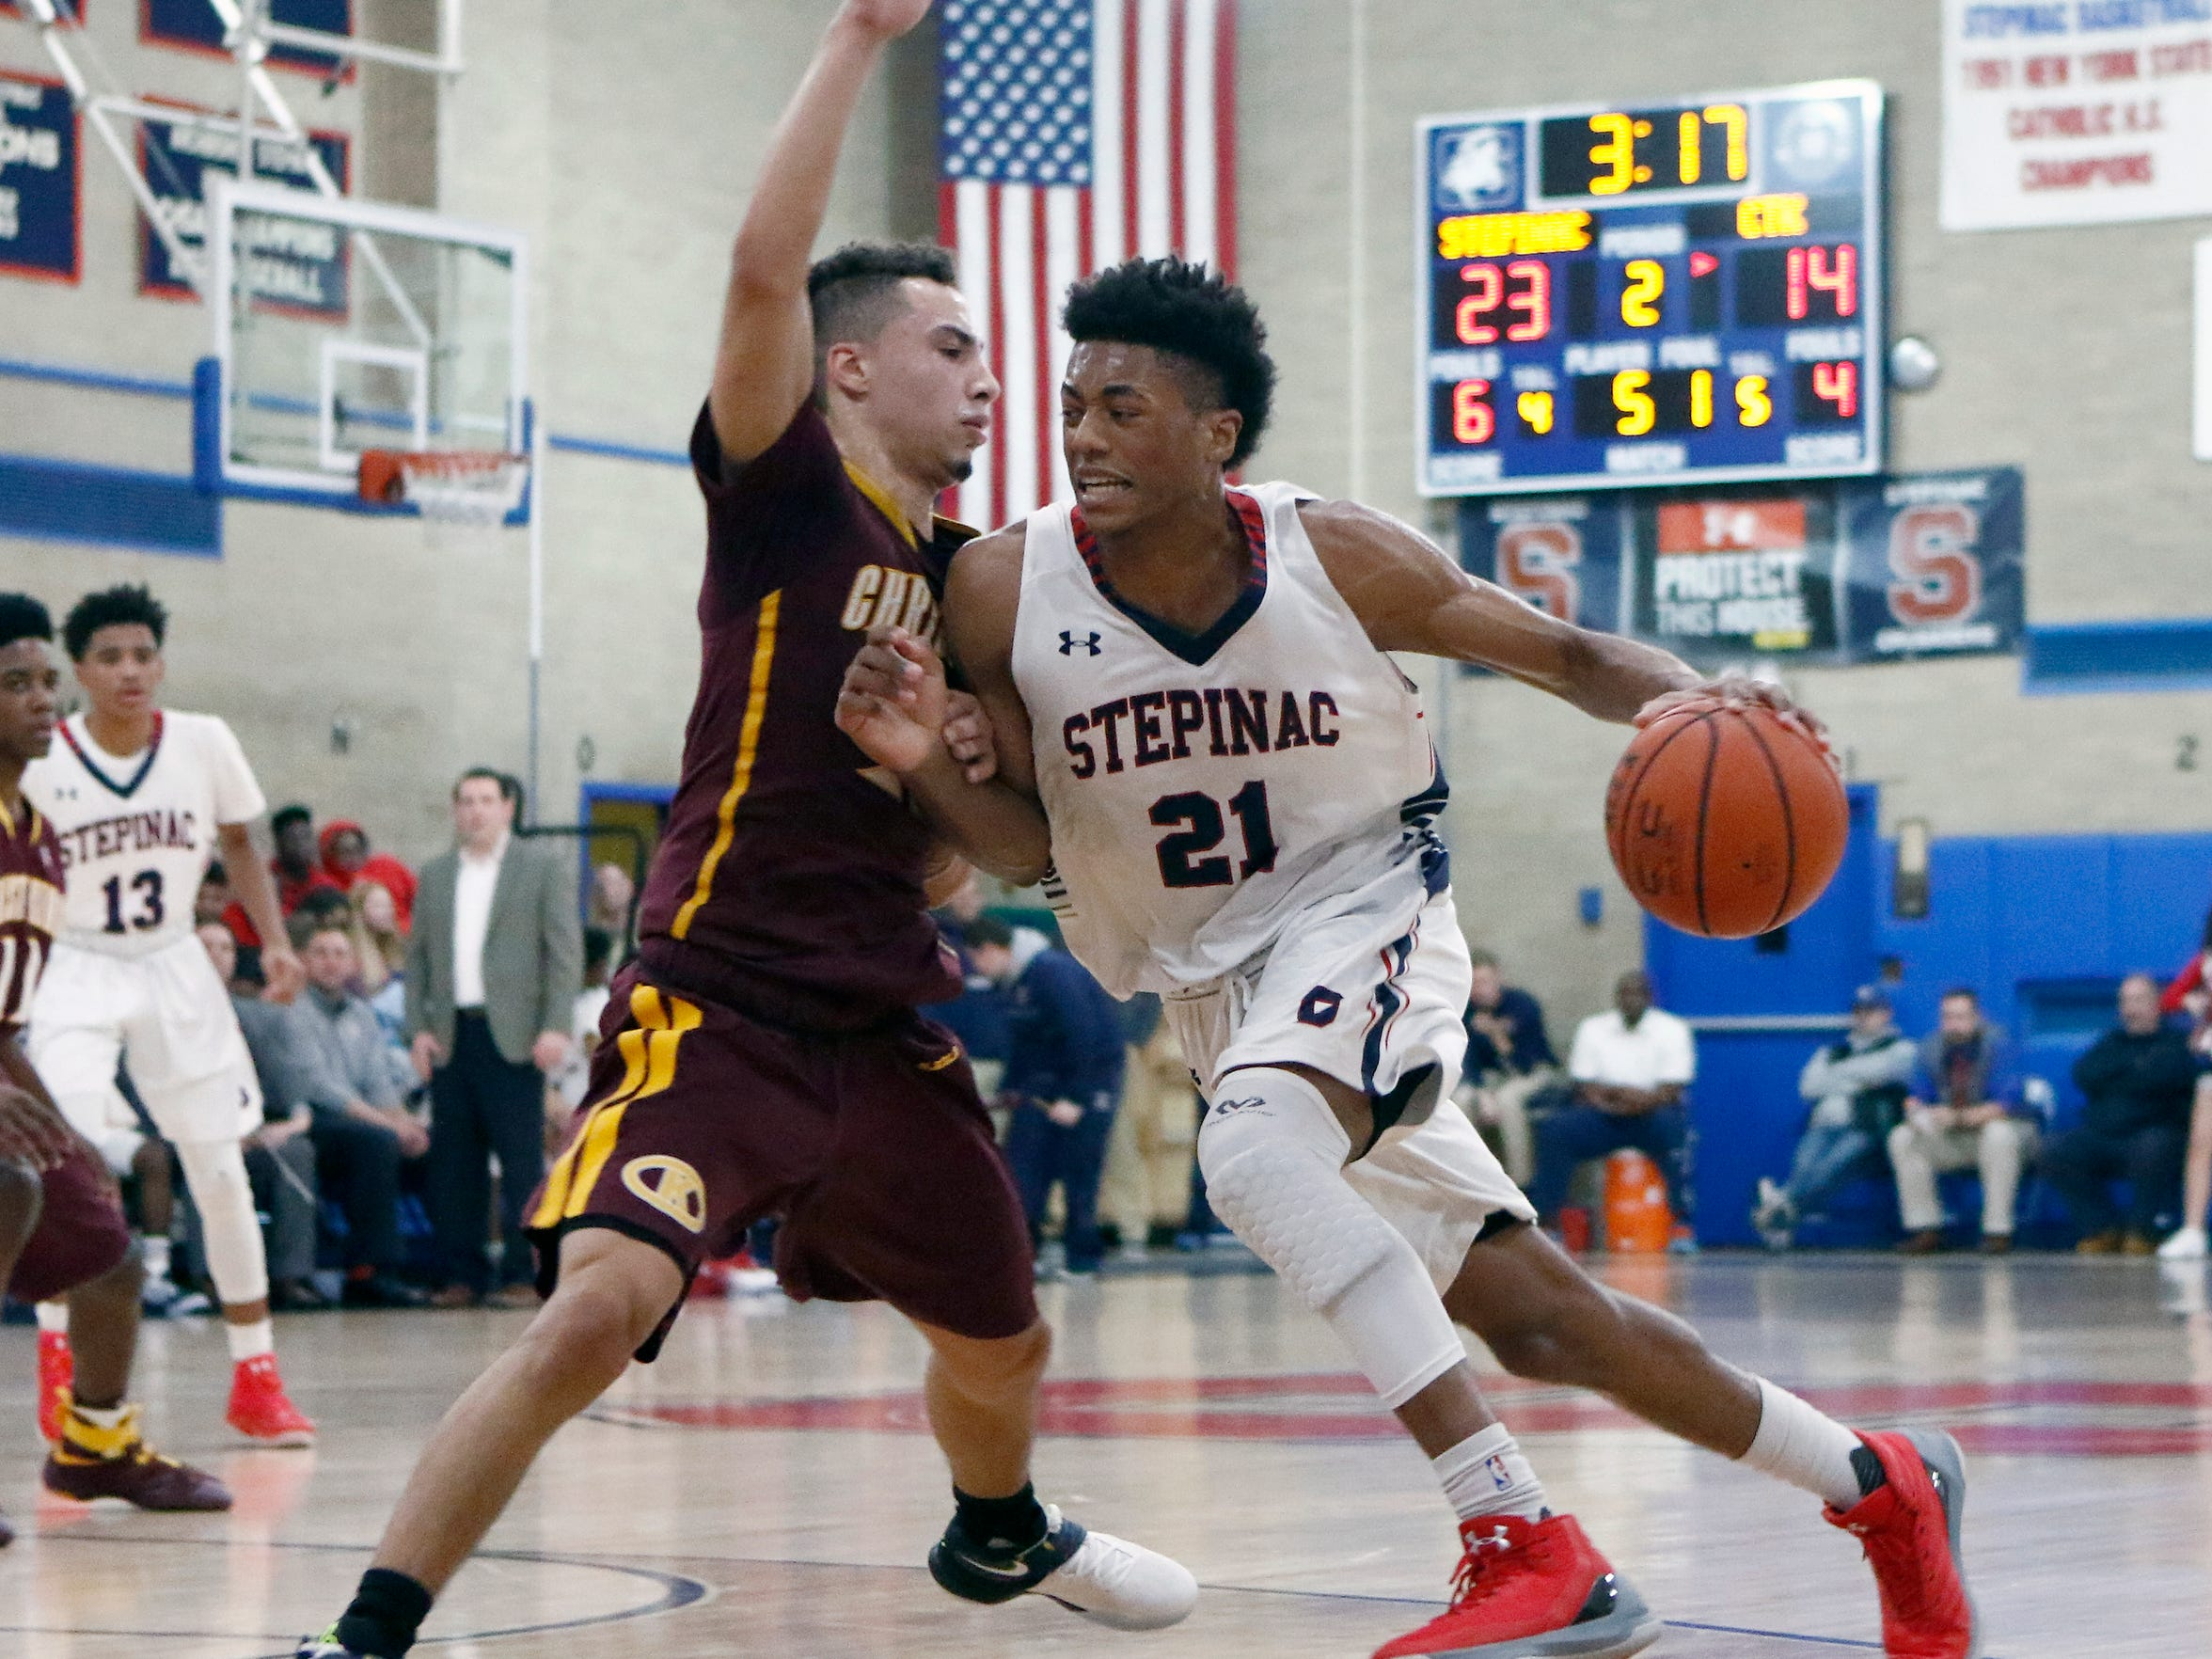 Stepinac's Alan Griffin (21) drives against Christ